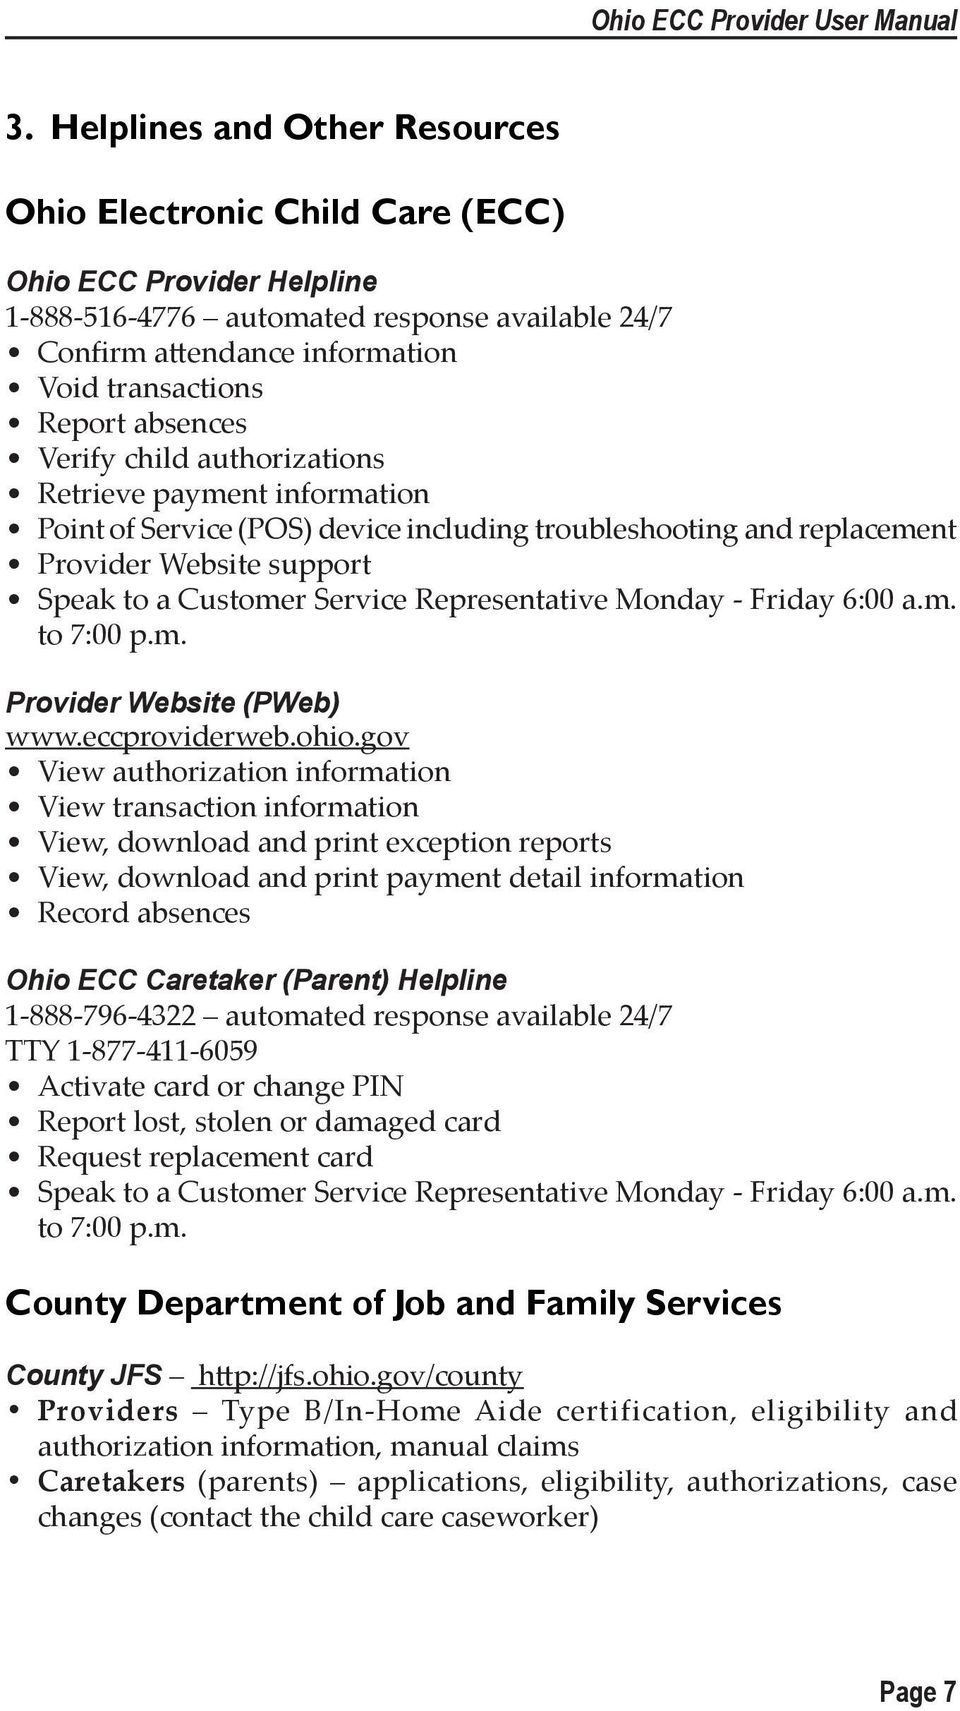 Representative Monday - Friday 6:00 a.m. to 7:00 p.m. Provider Website (PWeb) www.eccproviderweb.ohio.